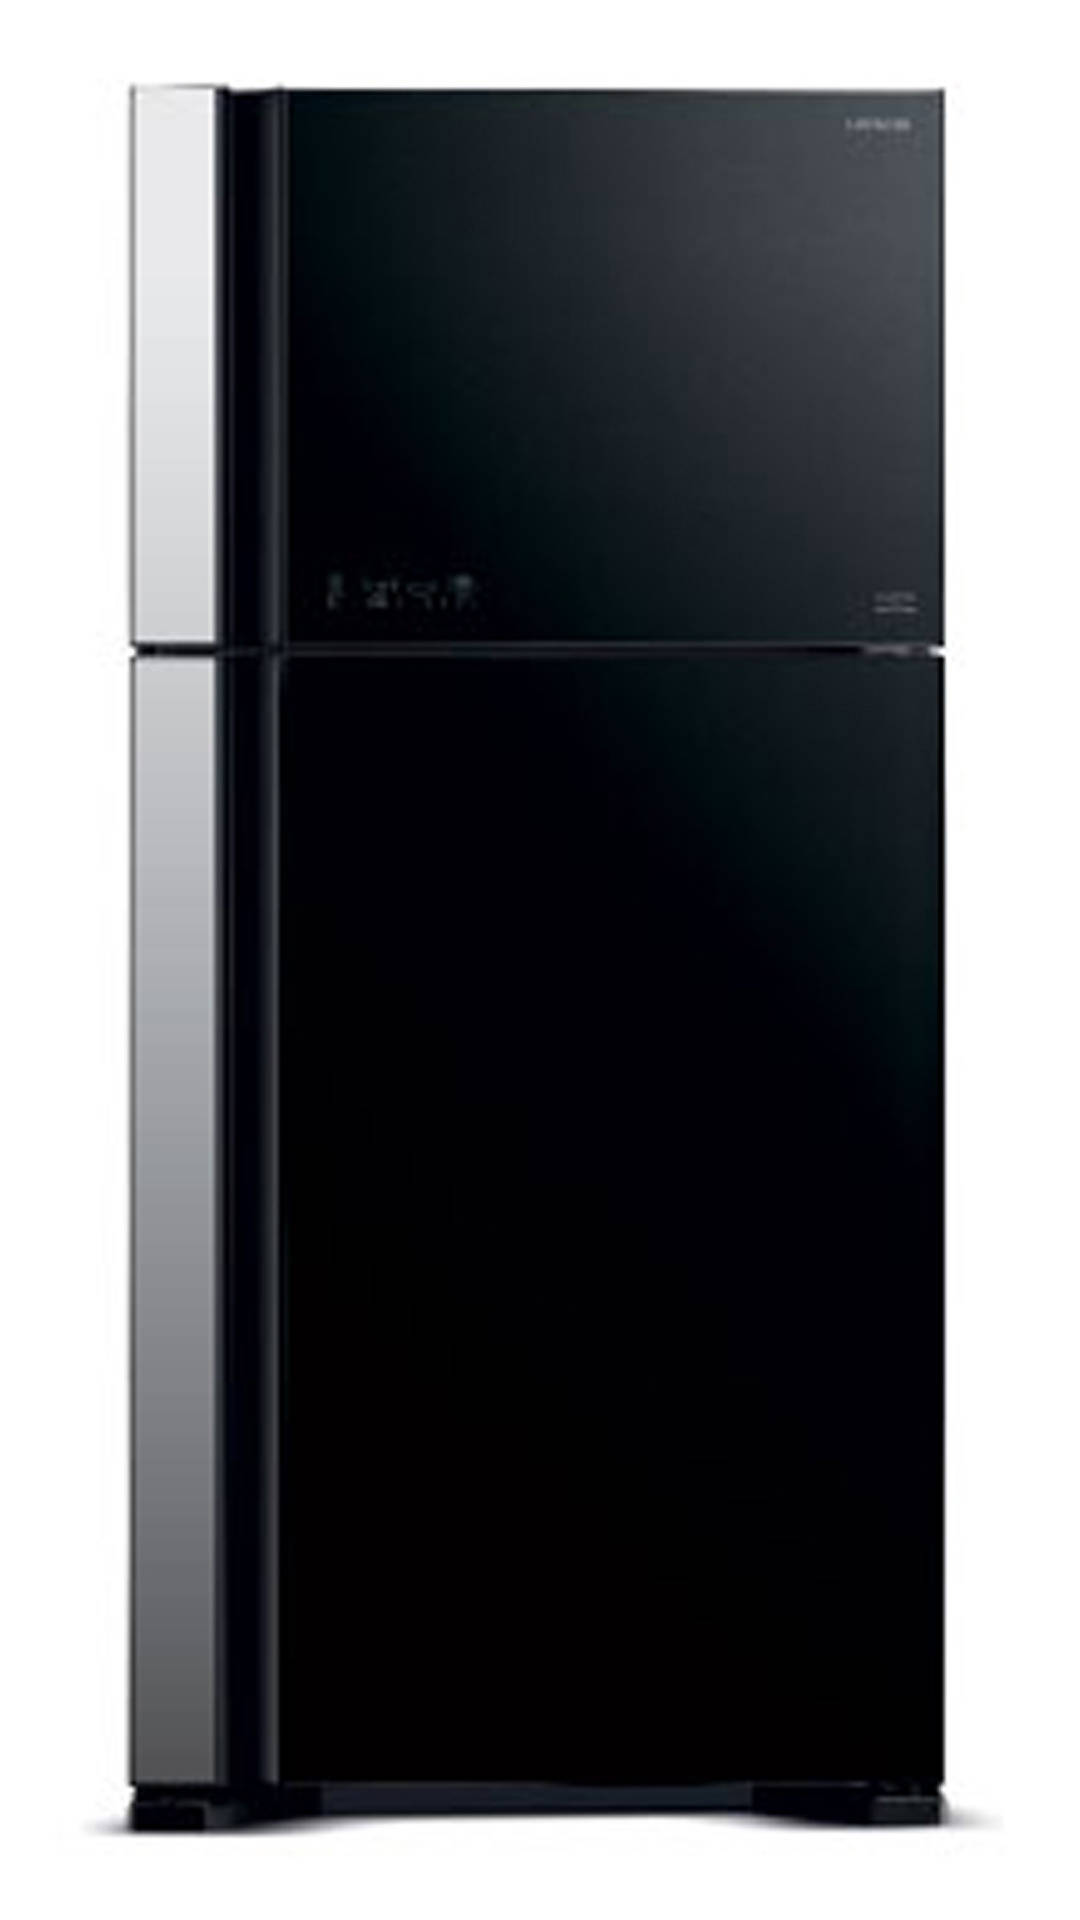 double whirlpool refrigerators control above sears manual refrigerator door black under dep counter with silver ice and inspiring doors button